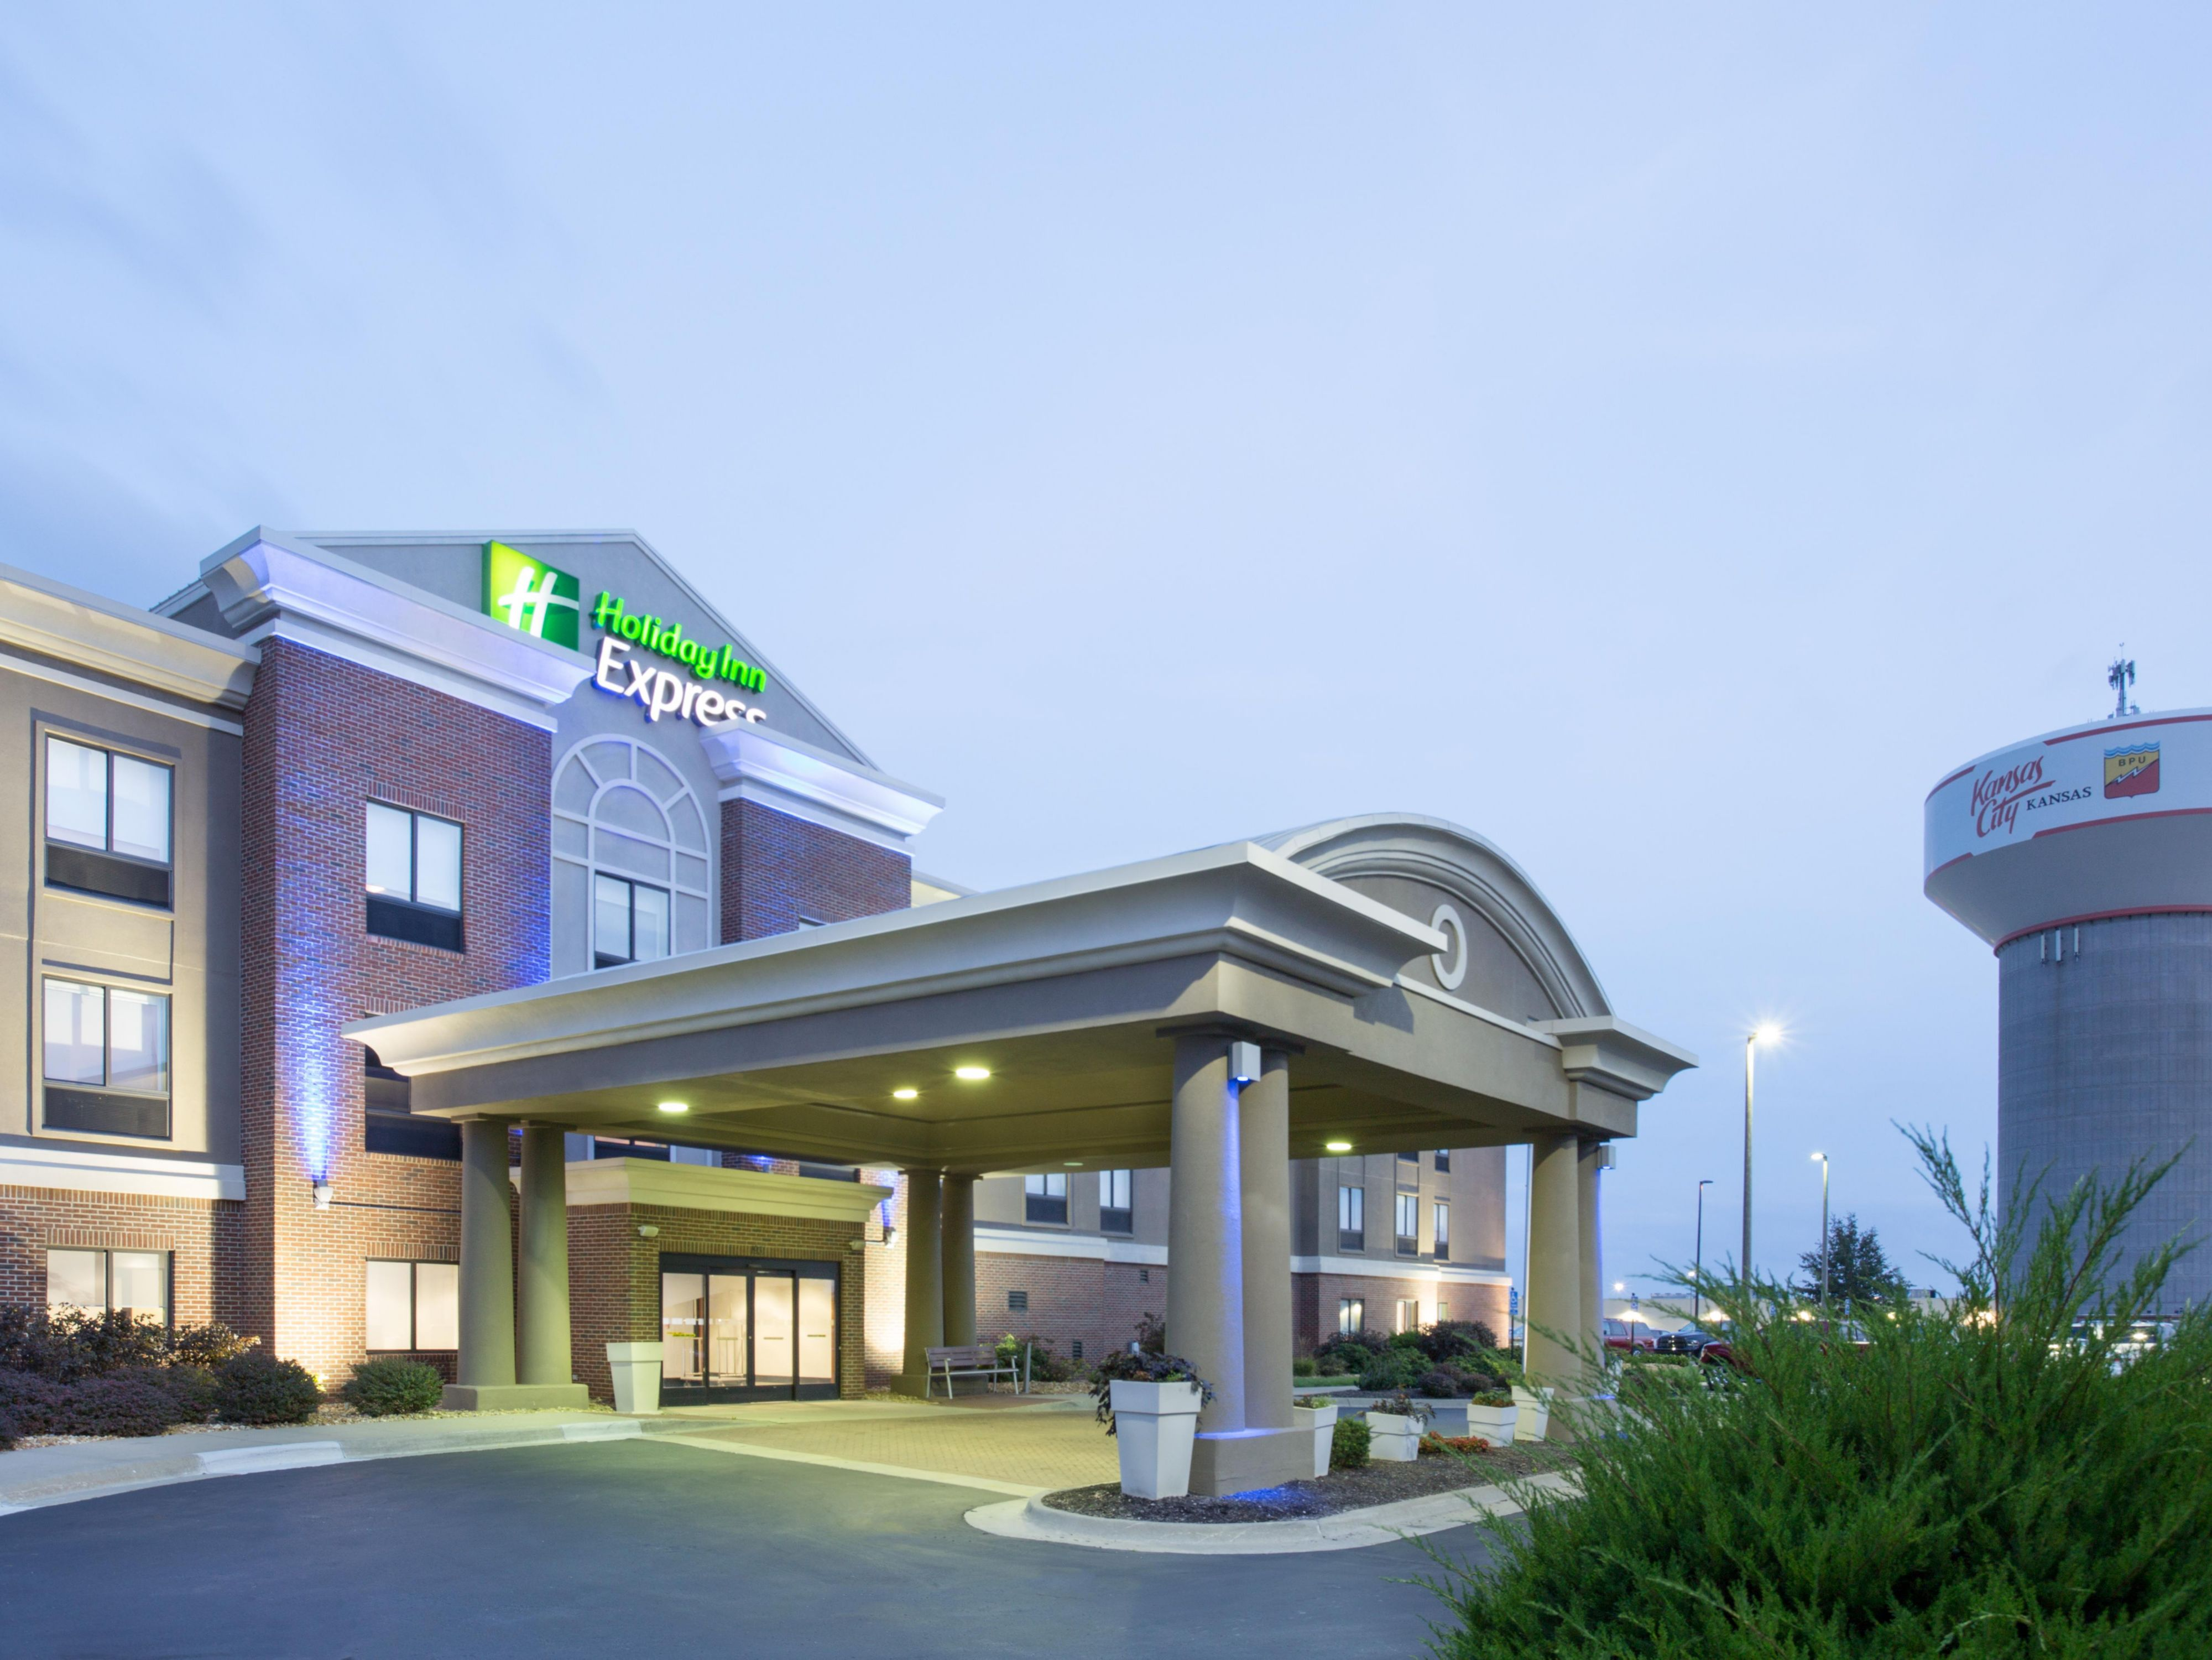 Find Kansas City Hotels Top Hotels In Kansas City MO By IHG - Map 1213 us 40 west cambridge city in